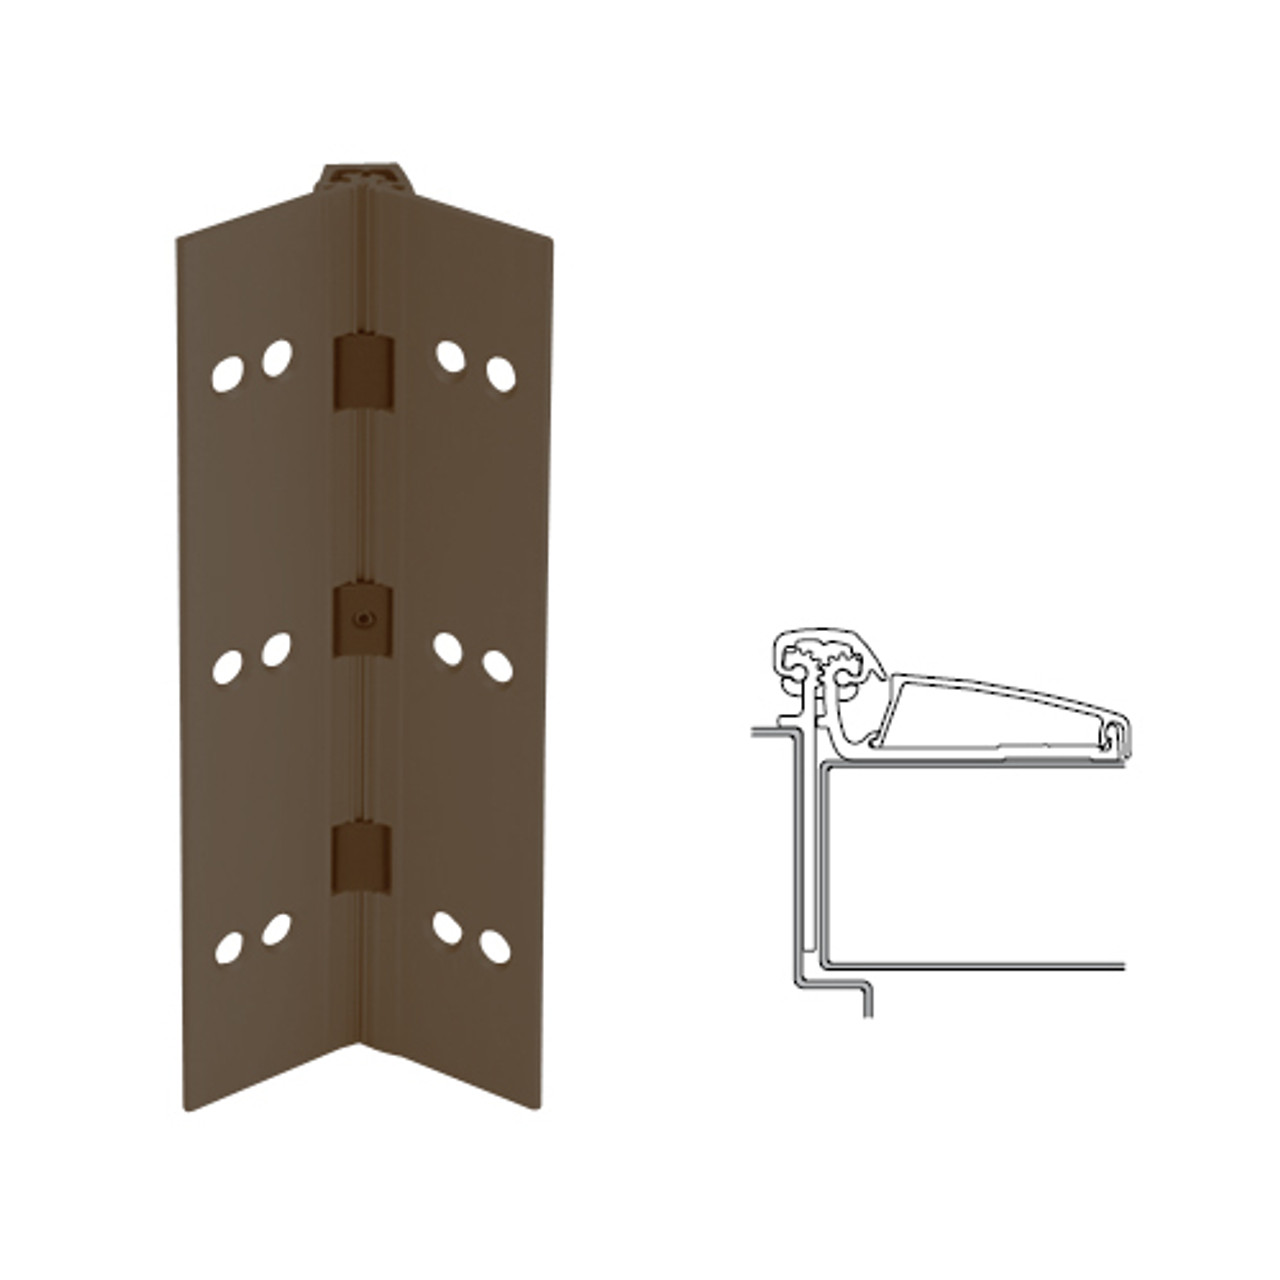 046XY-313AN-83-TF IVES Adjustable Half Surface Continuous Geared Hinges with Thread Forming Screws in Dark Bronze Anodized